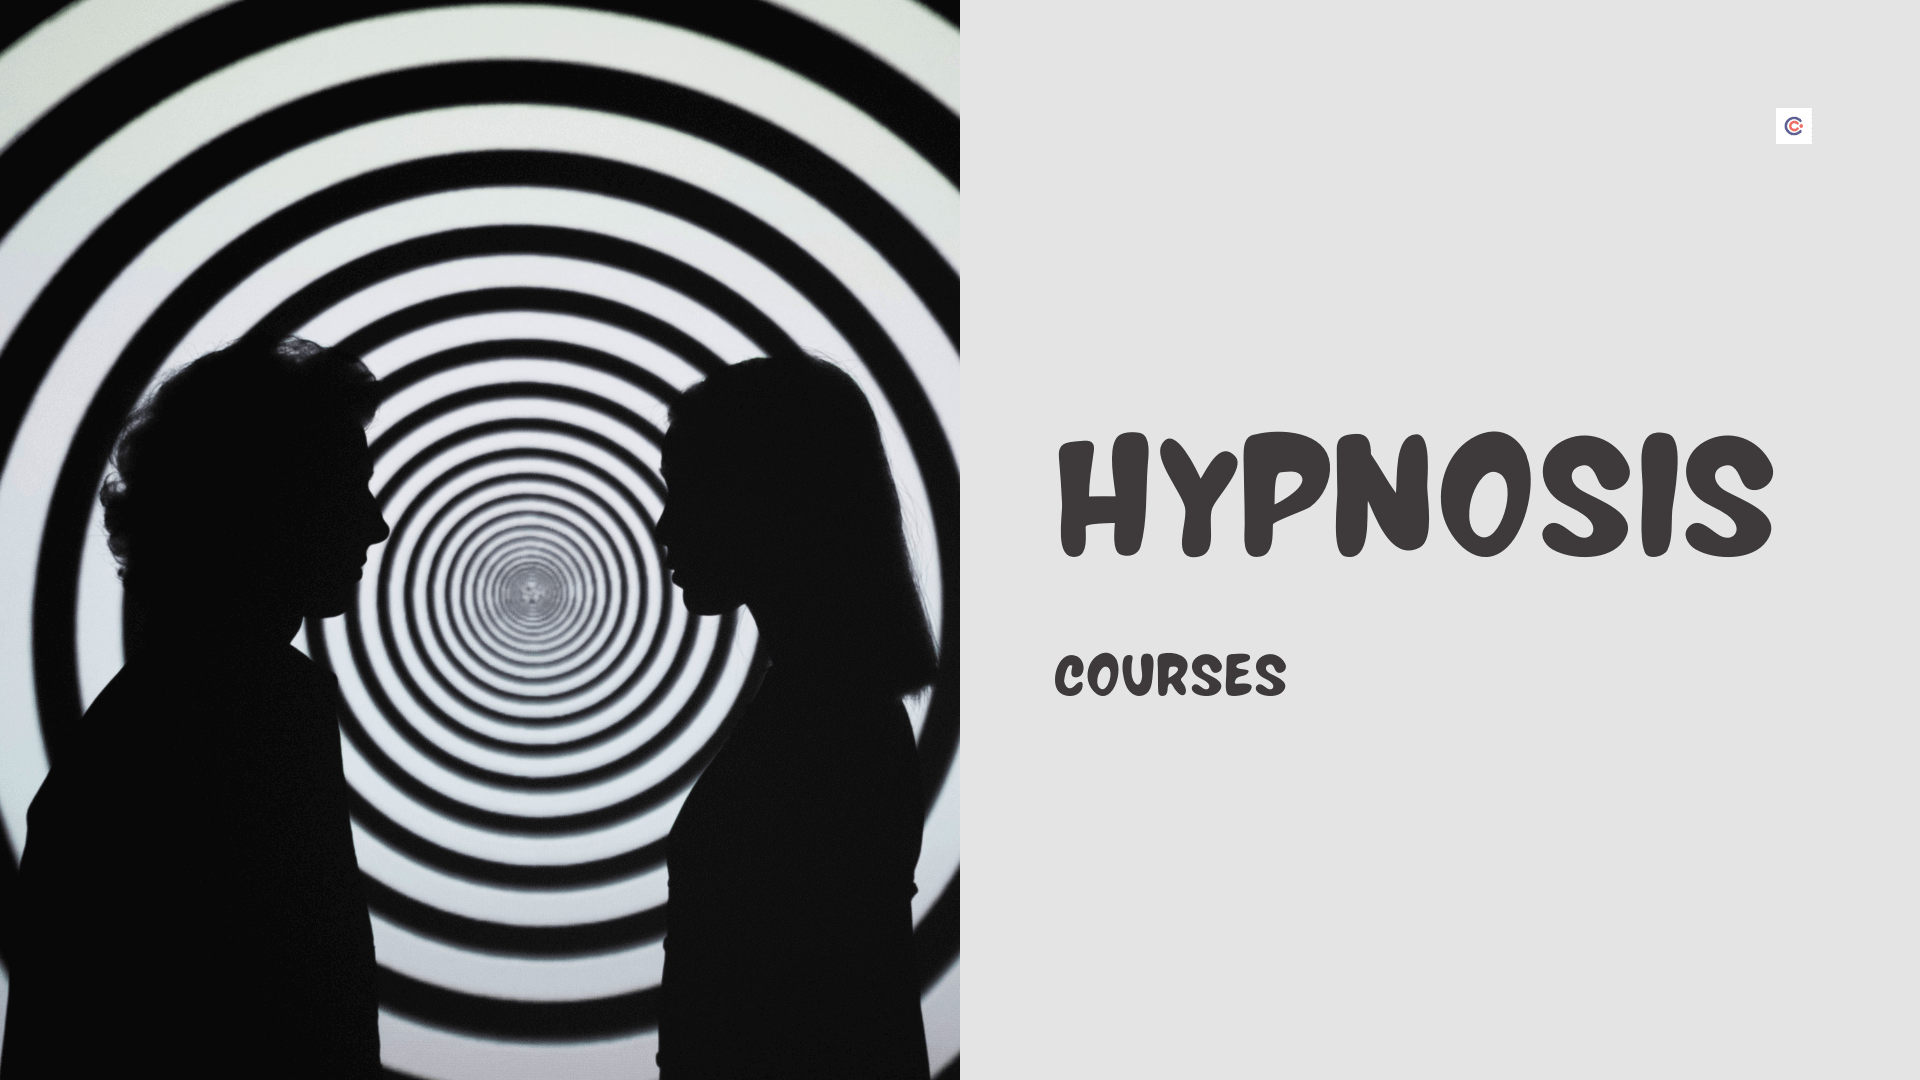 5 Best Hypnosis Courses - Learn Hypnosis Online